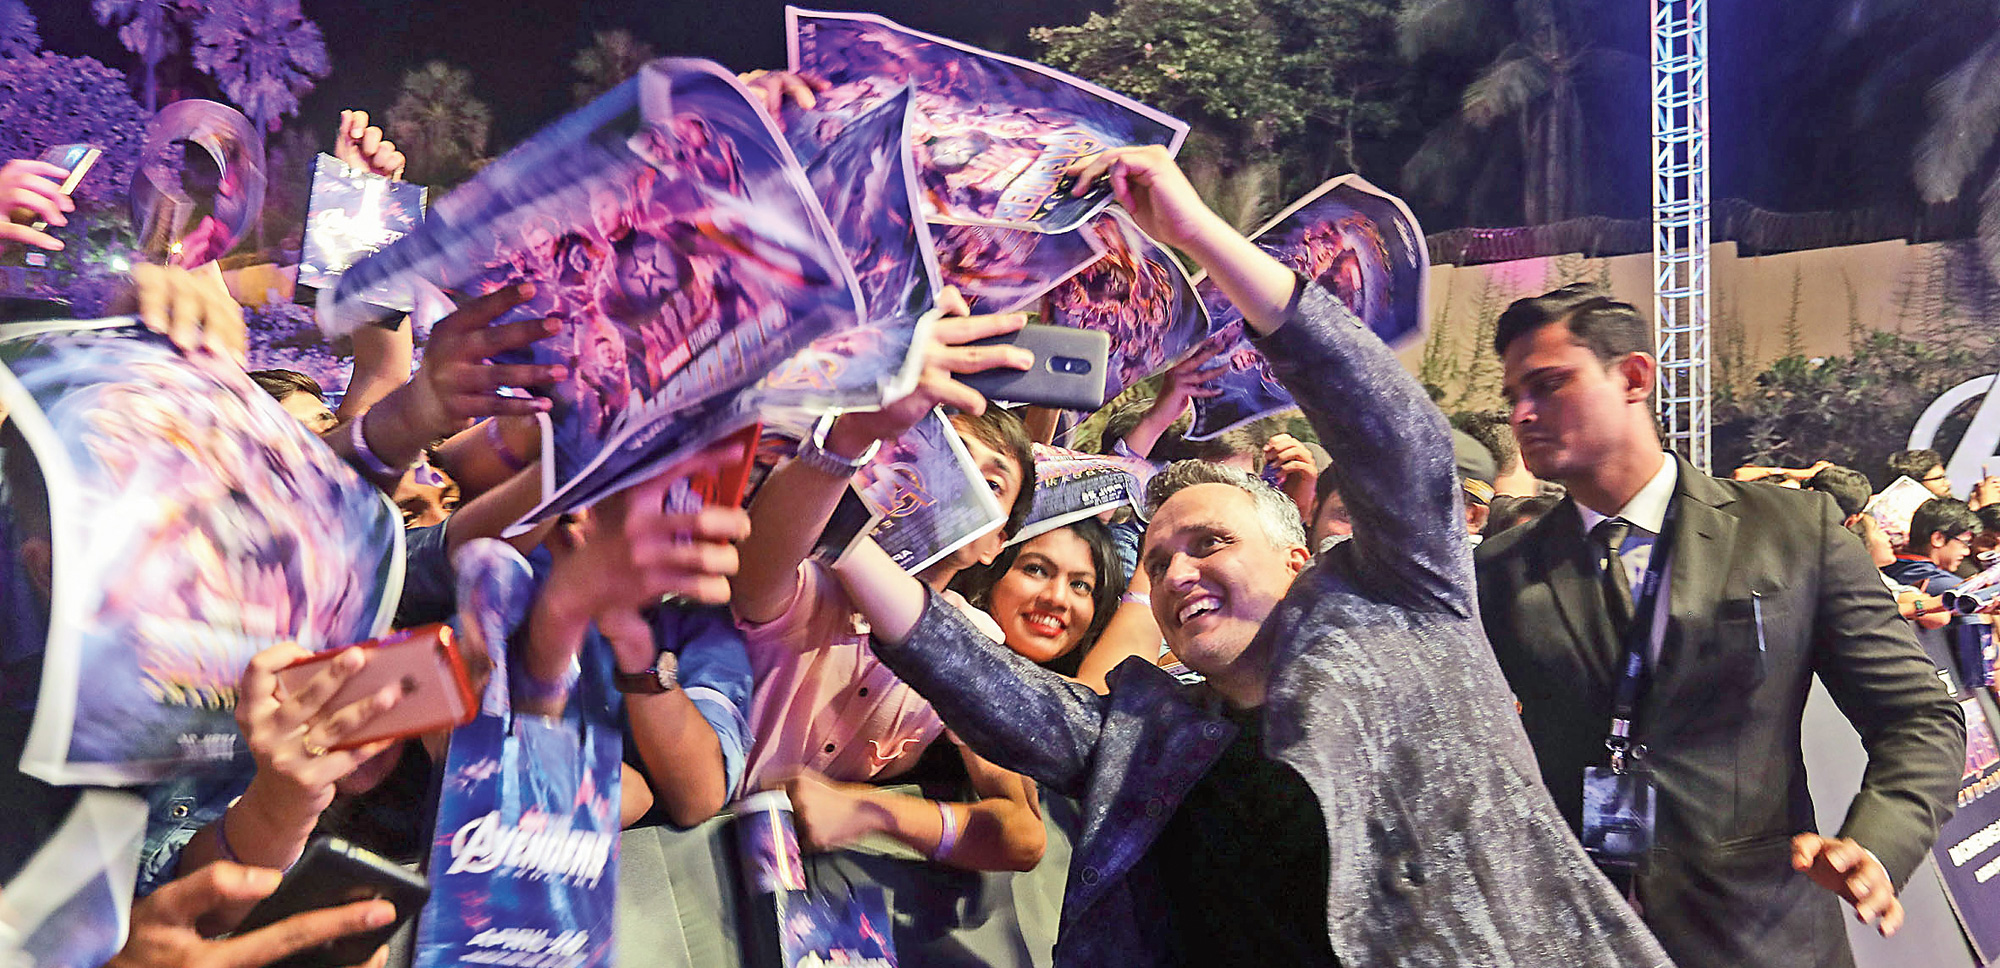 Joe Russo takes selfies with fans in Mumbai on April 1